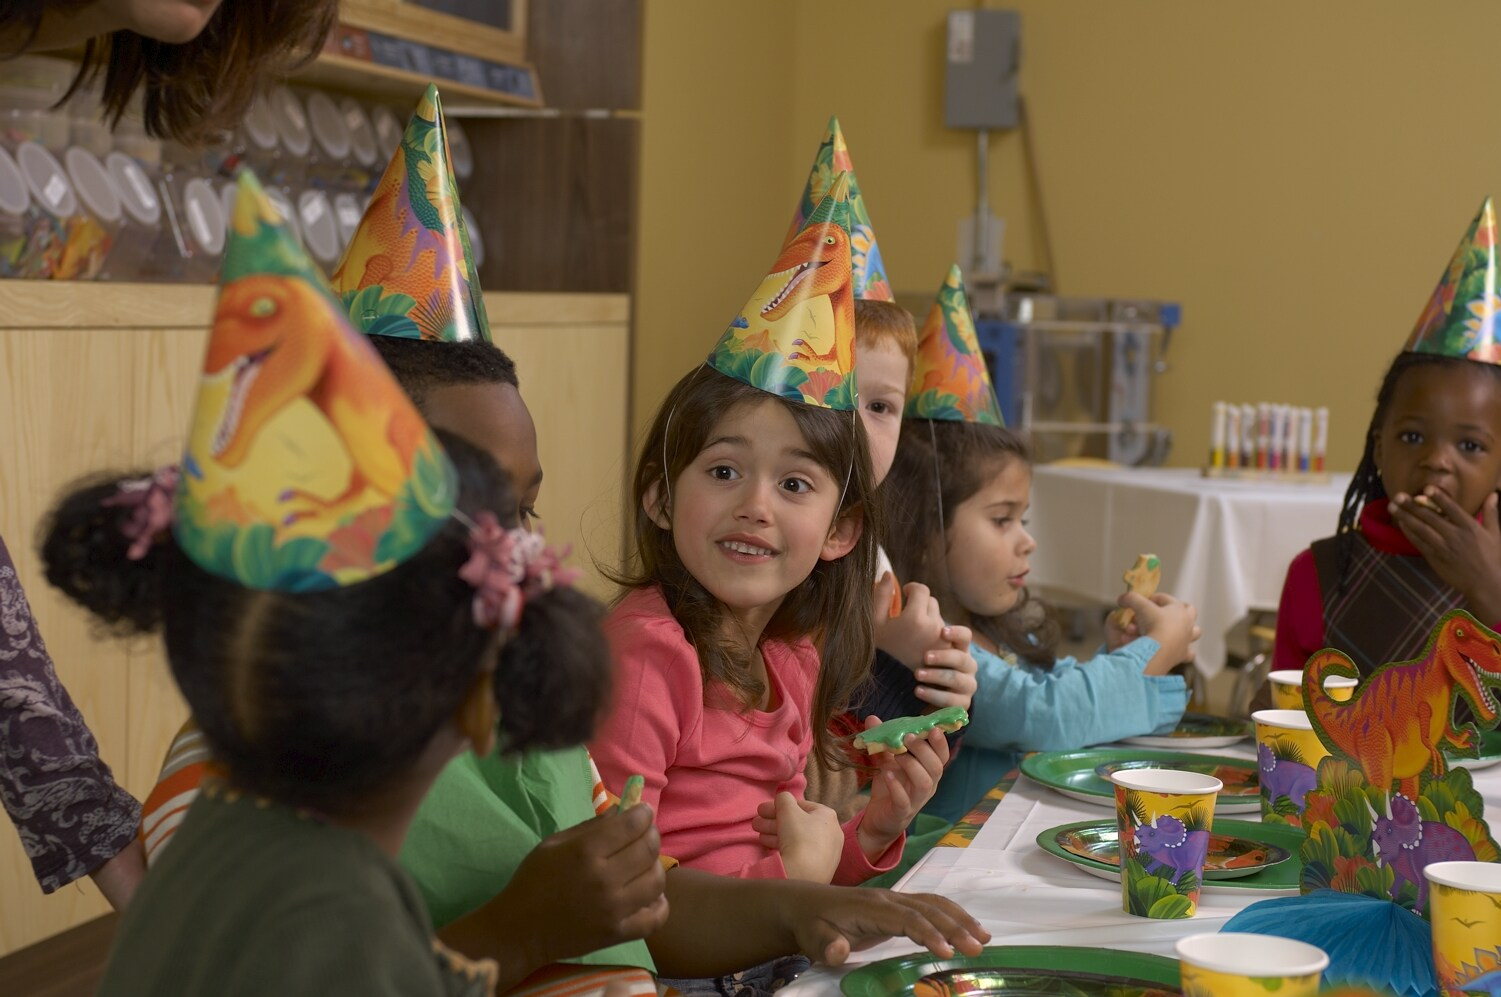 A group of children wearing party hats, seated around a table with party decoration.